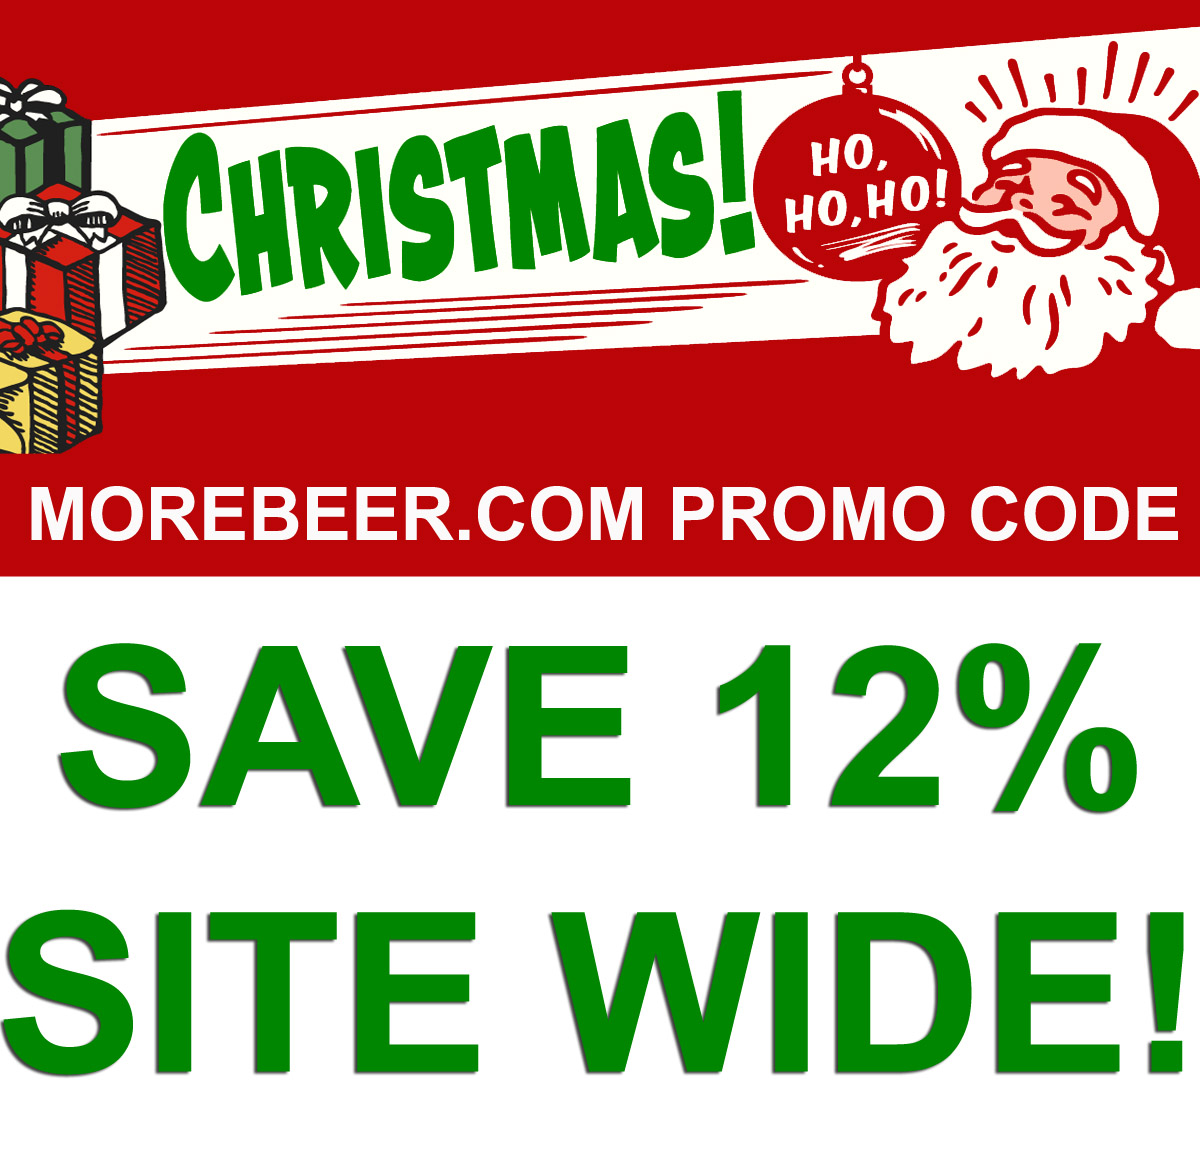 Home Wine Making Coupon Codes for Save 12% Site Wide At MoreBeer.com With Promo Code Coupon Code